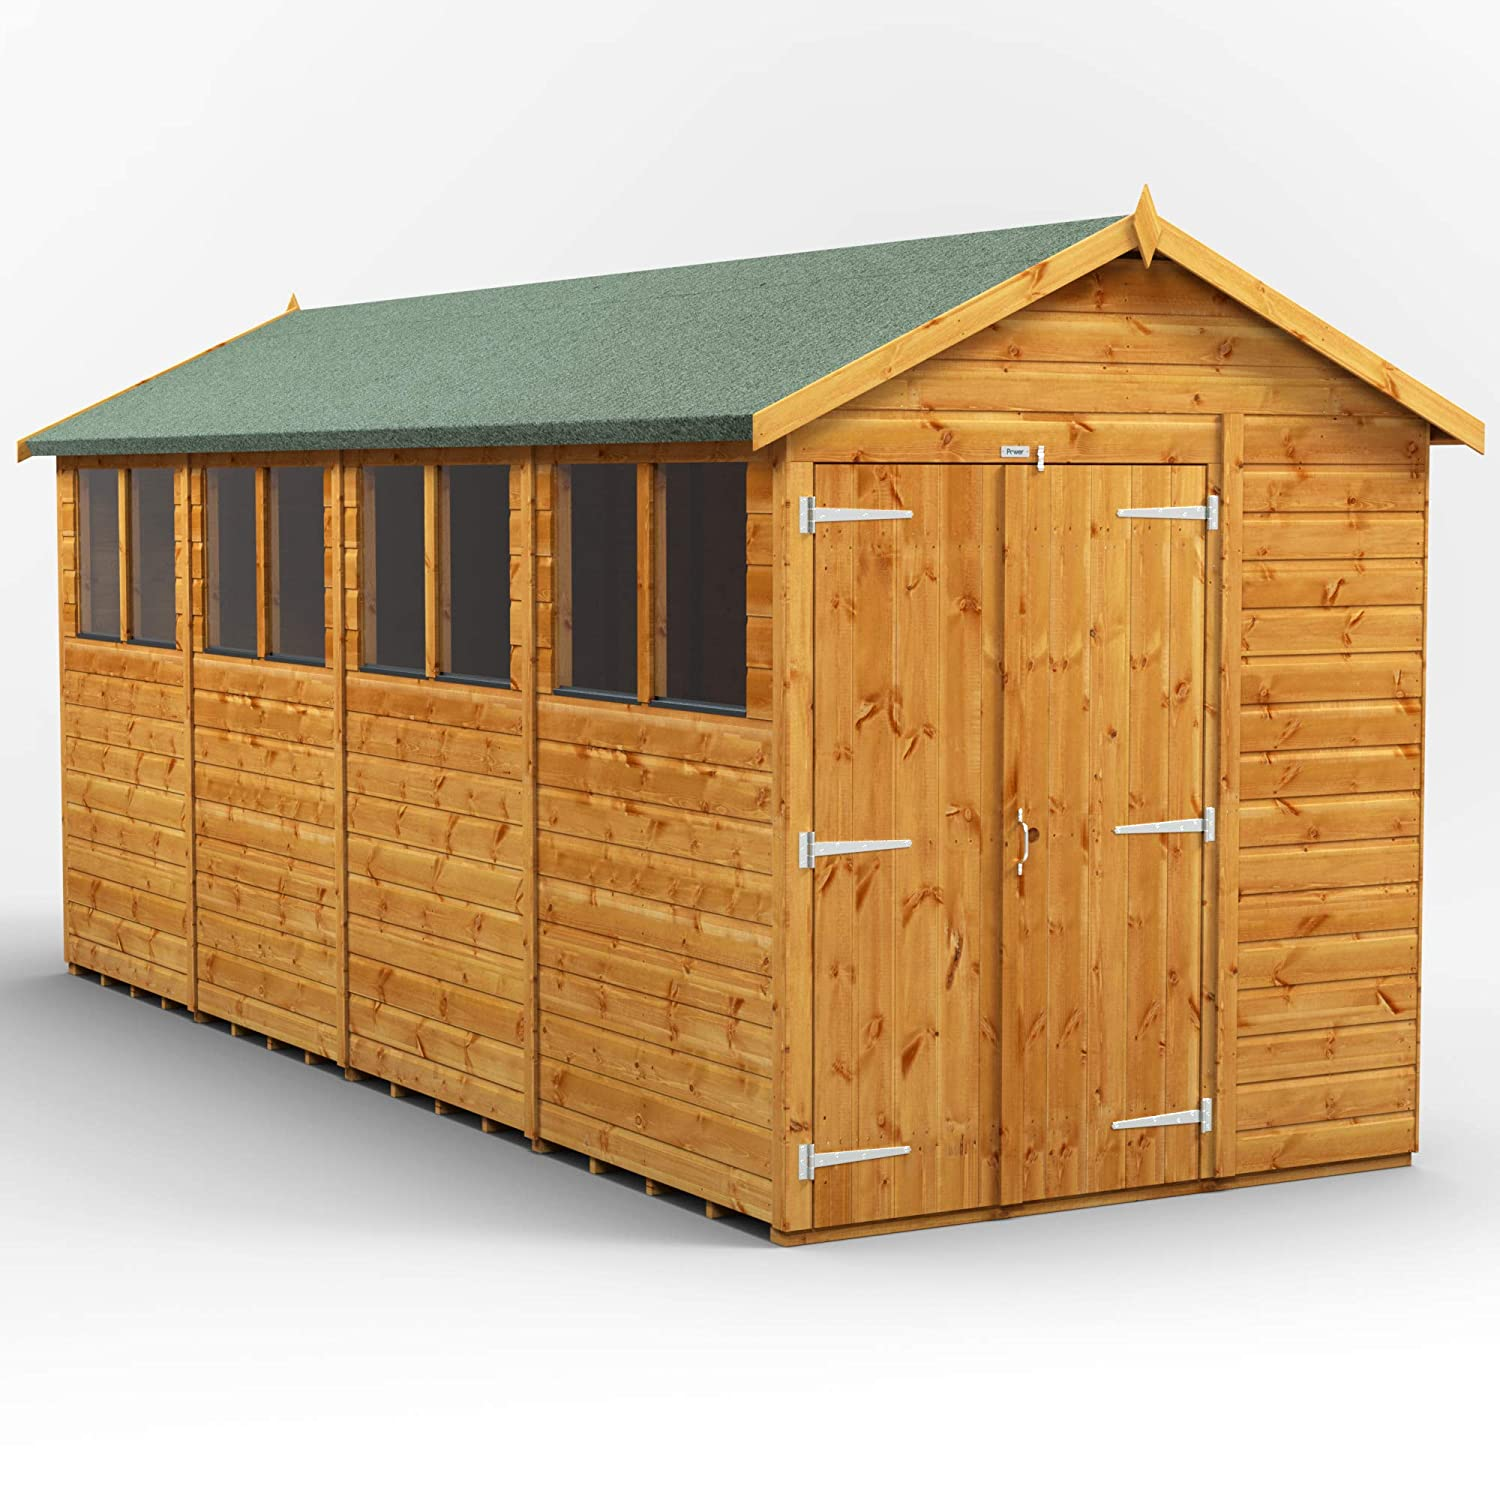 Power 16x6 Double Door Apex Wooden Garden Shed Size 16 X 6 Super Fast 2 3 Day Delivery Or Pick Your Own Day